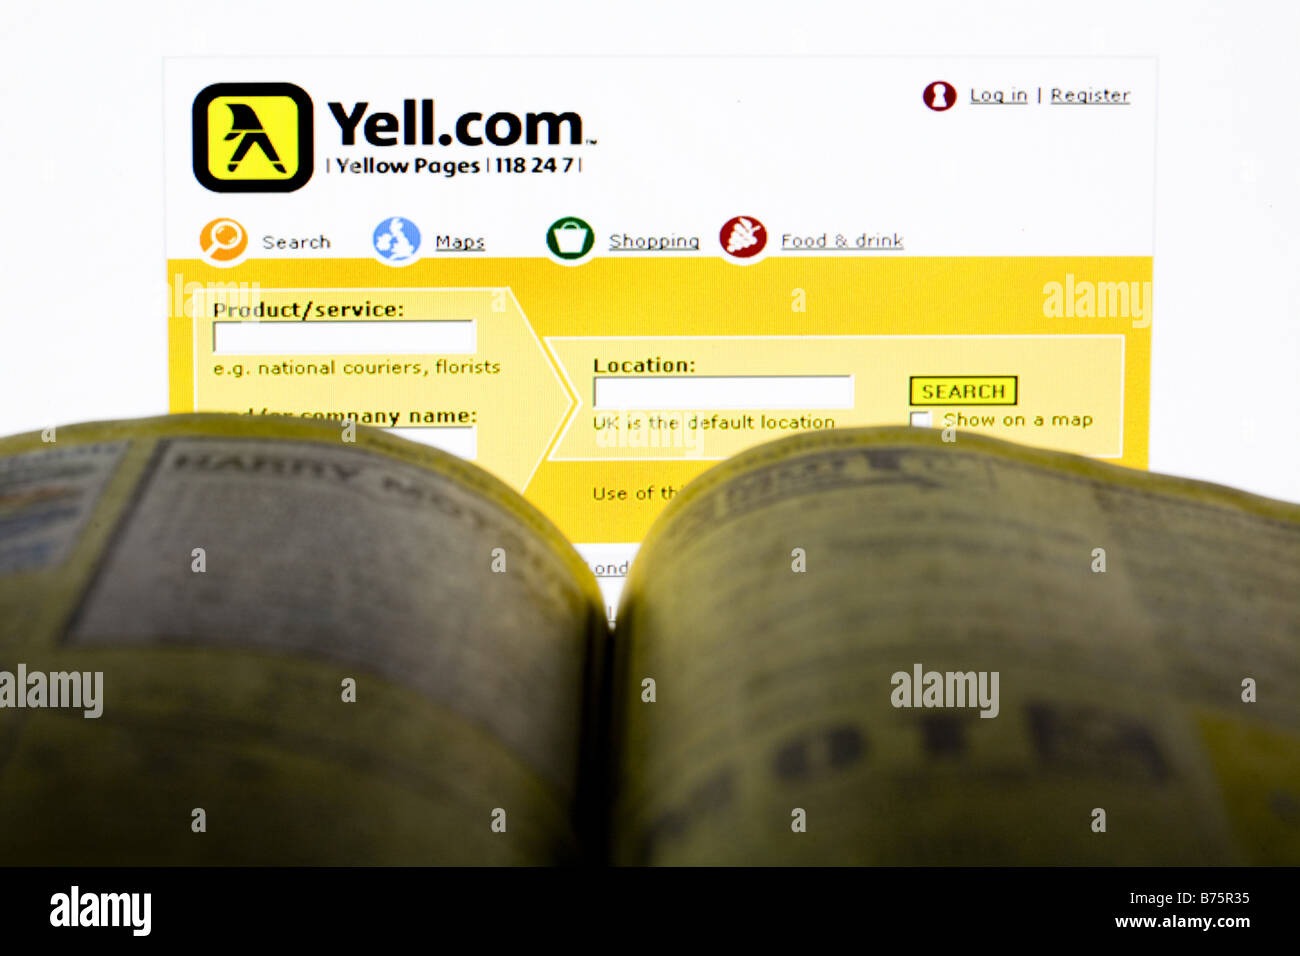 Yellow Pages Telephone Business Directory Stock Photos & Yellow